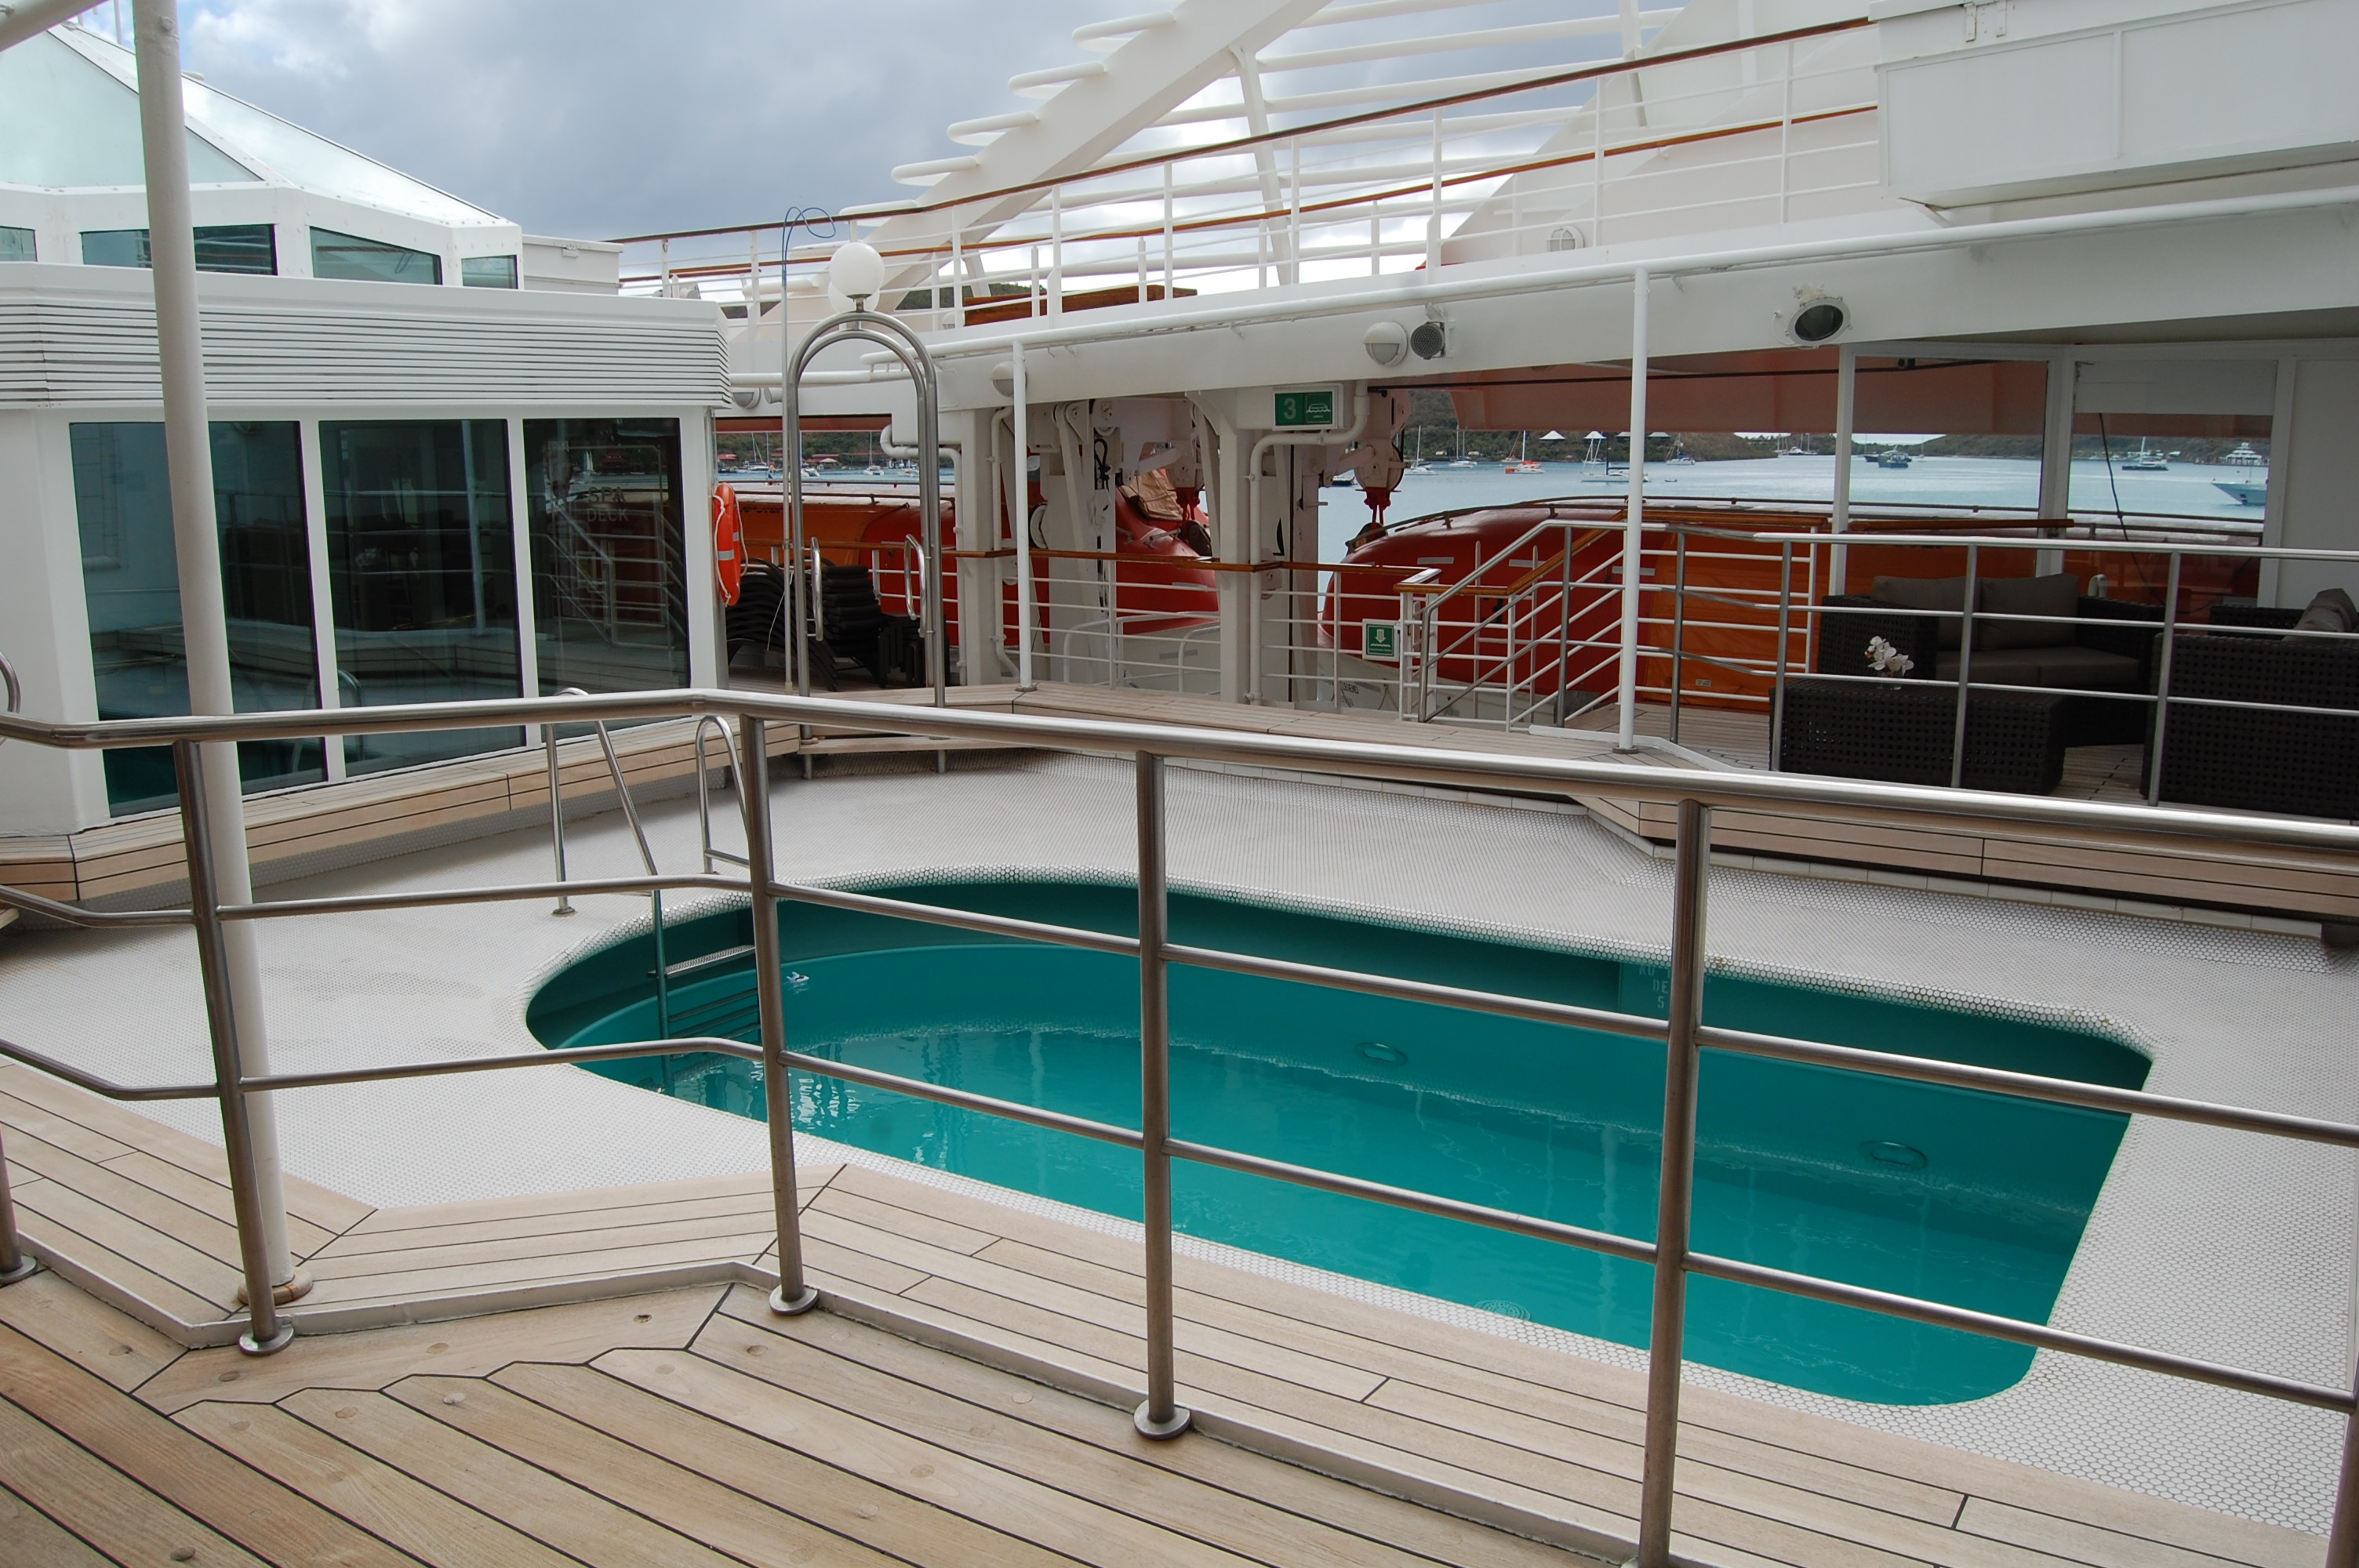 The seabourn legend the world according to jud our cruise baanklon Images